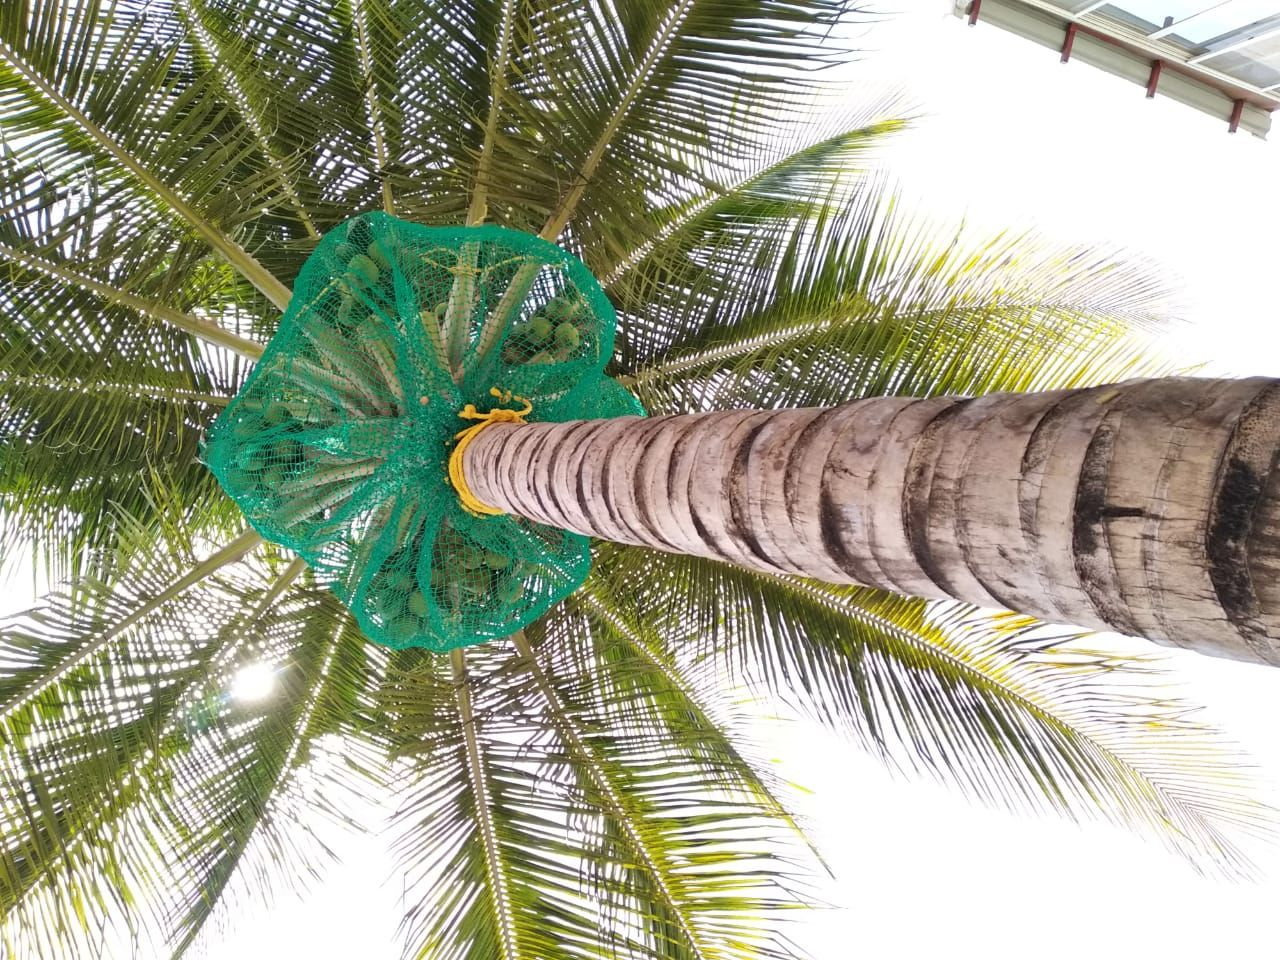 Facing problem of falling Coconuts?? Risk for children